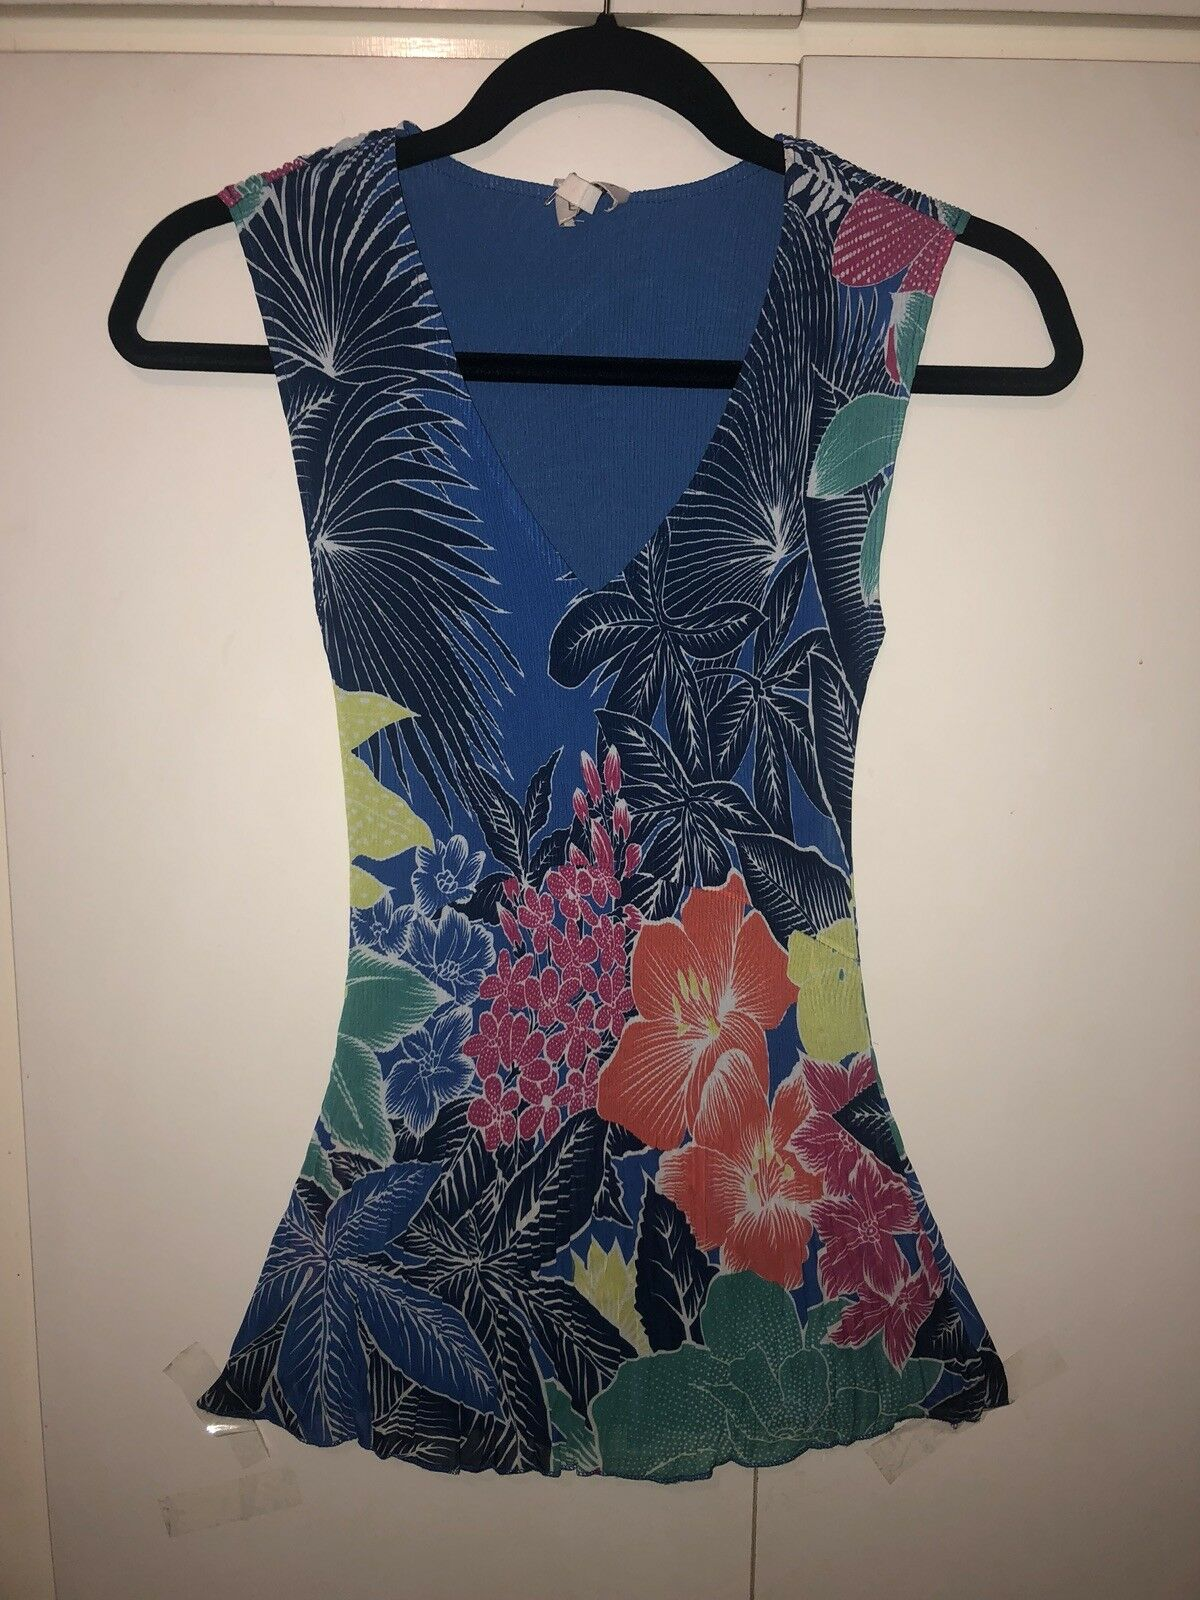 East John Lewis Size 8 Pleated Floral Summer Top Multi Coloured With Lining